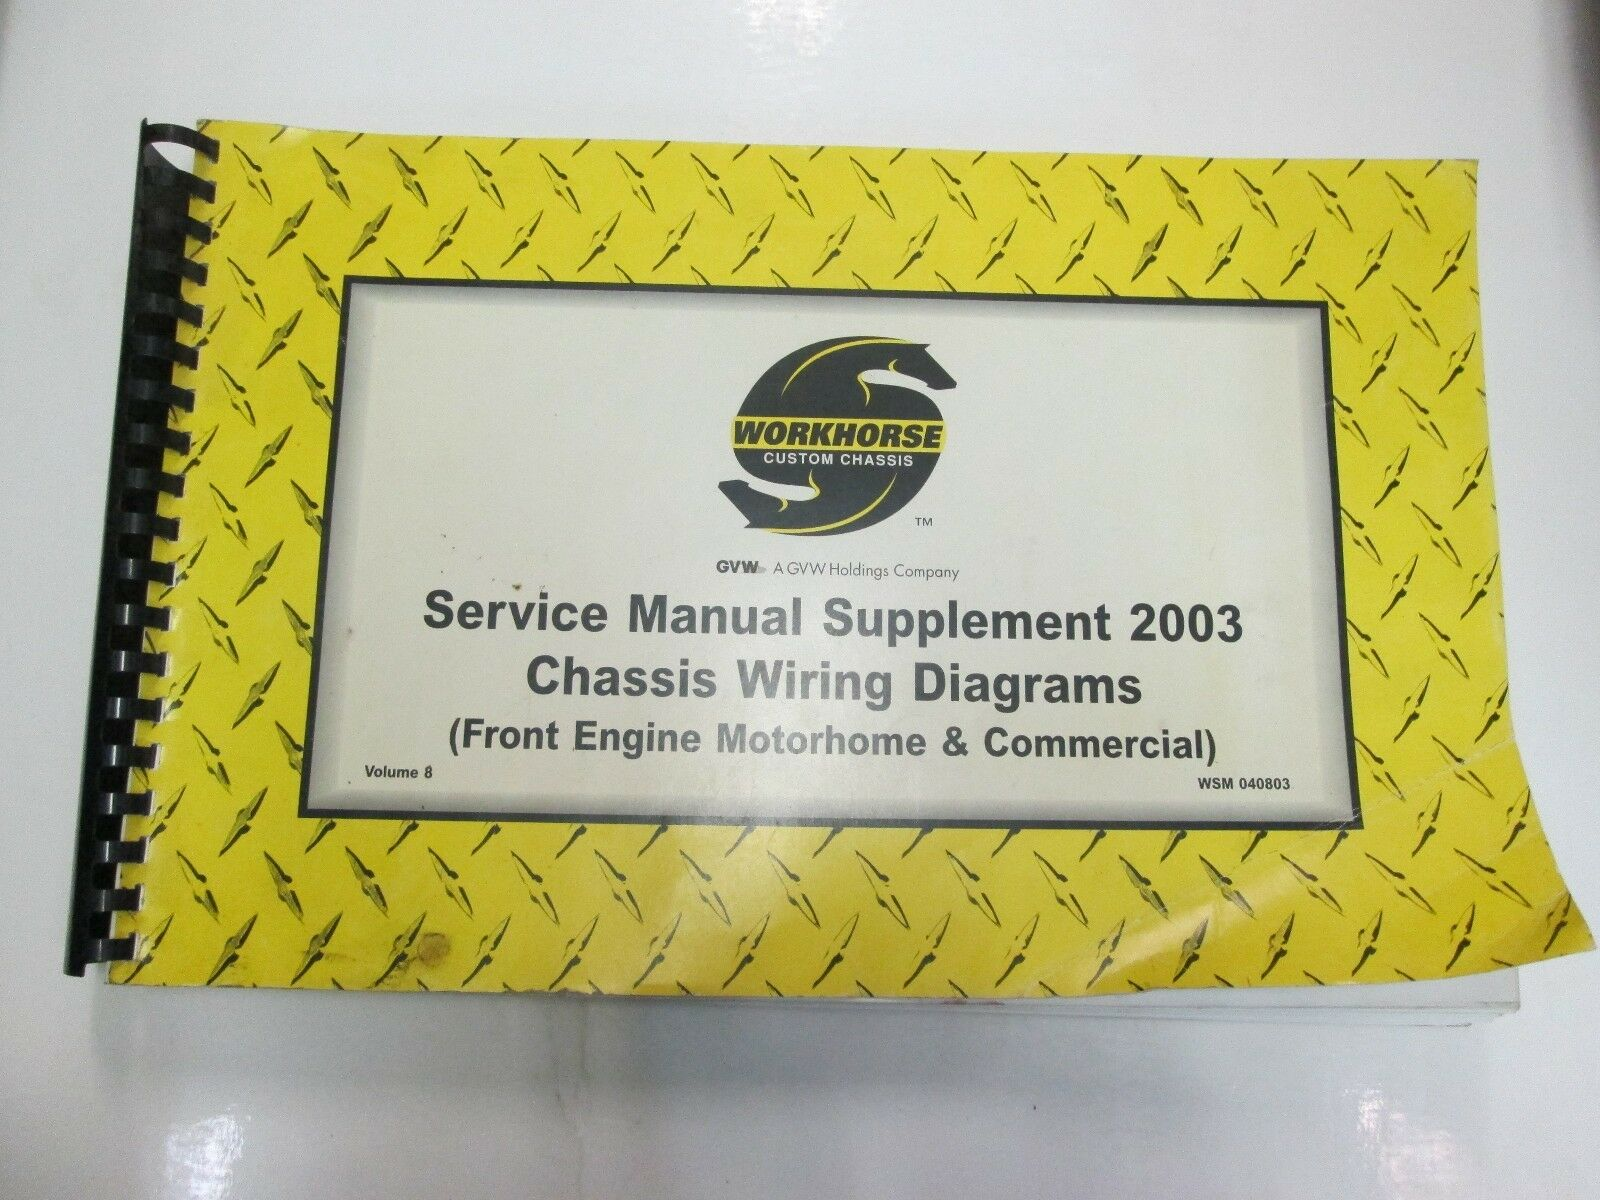 Workhorse Custom Chassis Service Manual Supplement Chassis Wiring Diagrams  VOL 8 | eBay | Workhorse Chassis Wiring Diagram |  | eBay